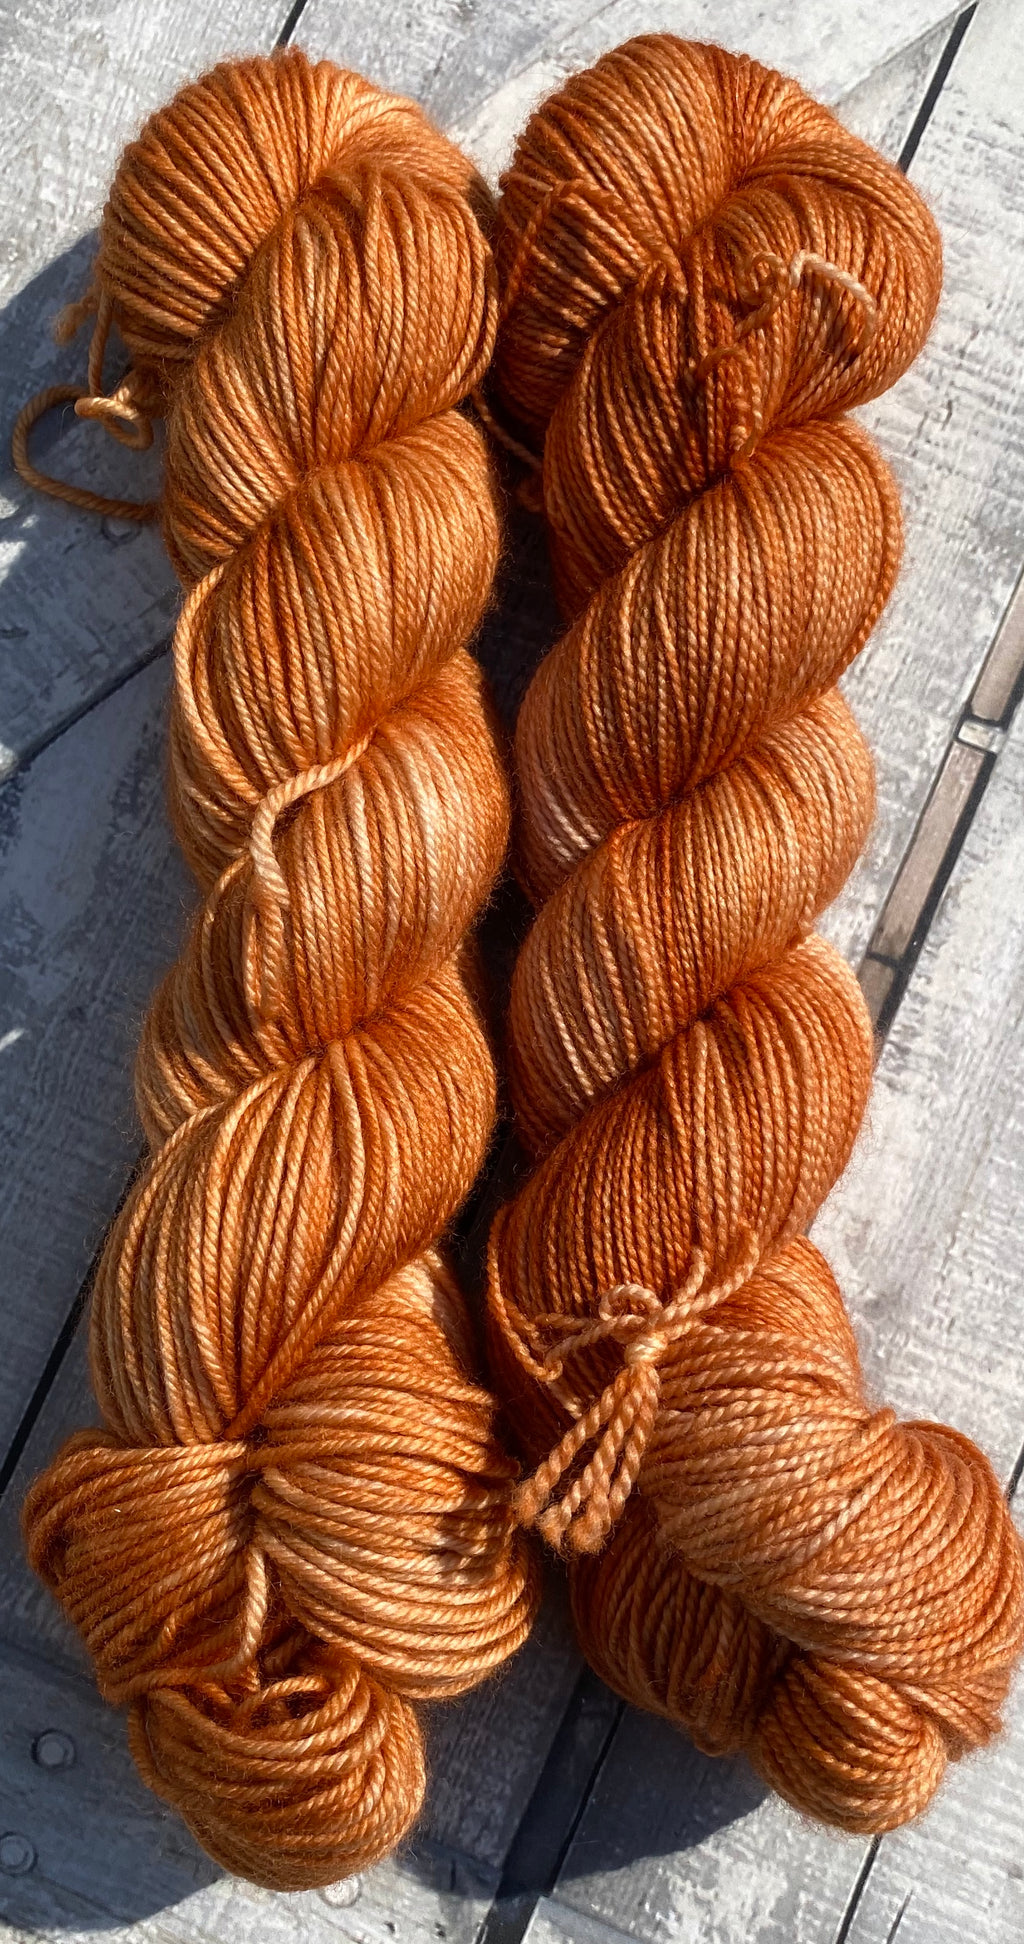 Hawthorne Fairy - FALL 2020 collection, Toad Hollow Yarns